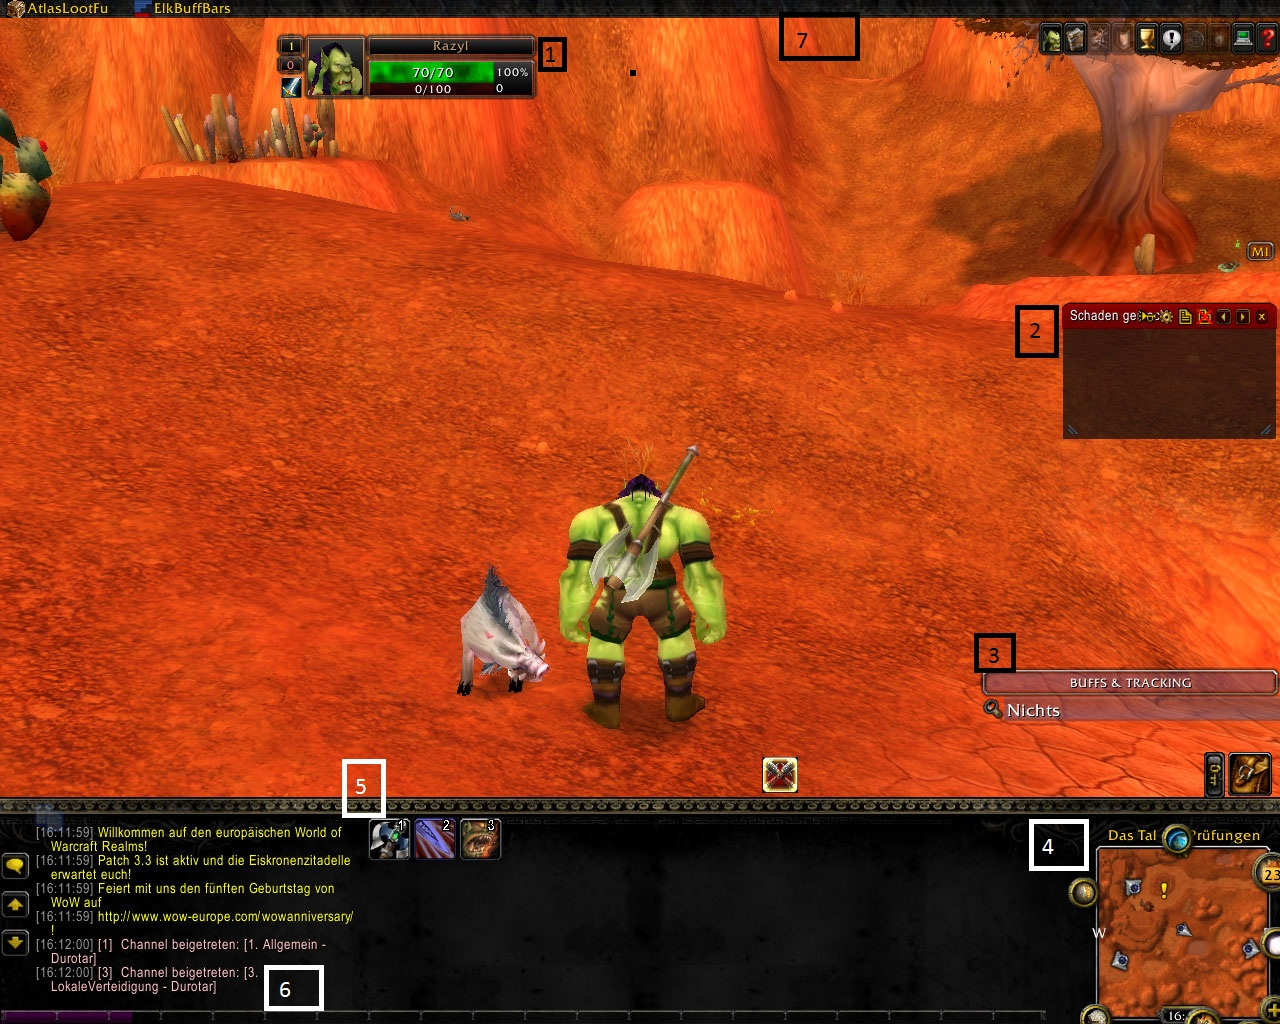 WoW: Interface selbstgemacht - S.3 - Guide | GamersGlobal.de